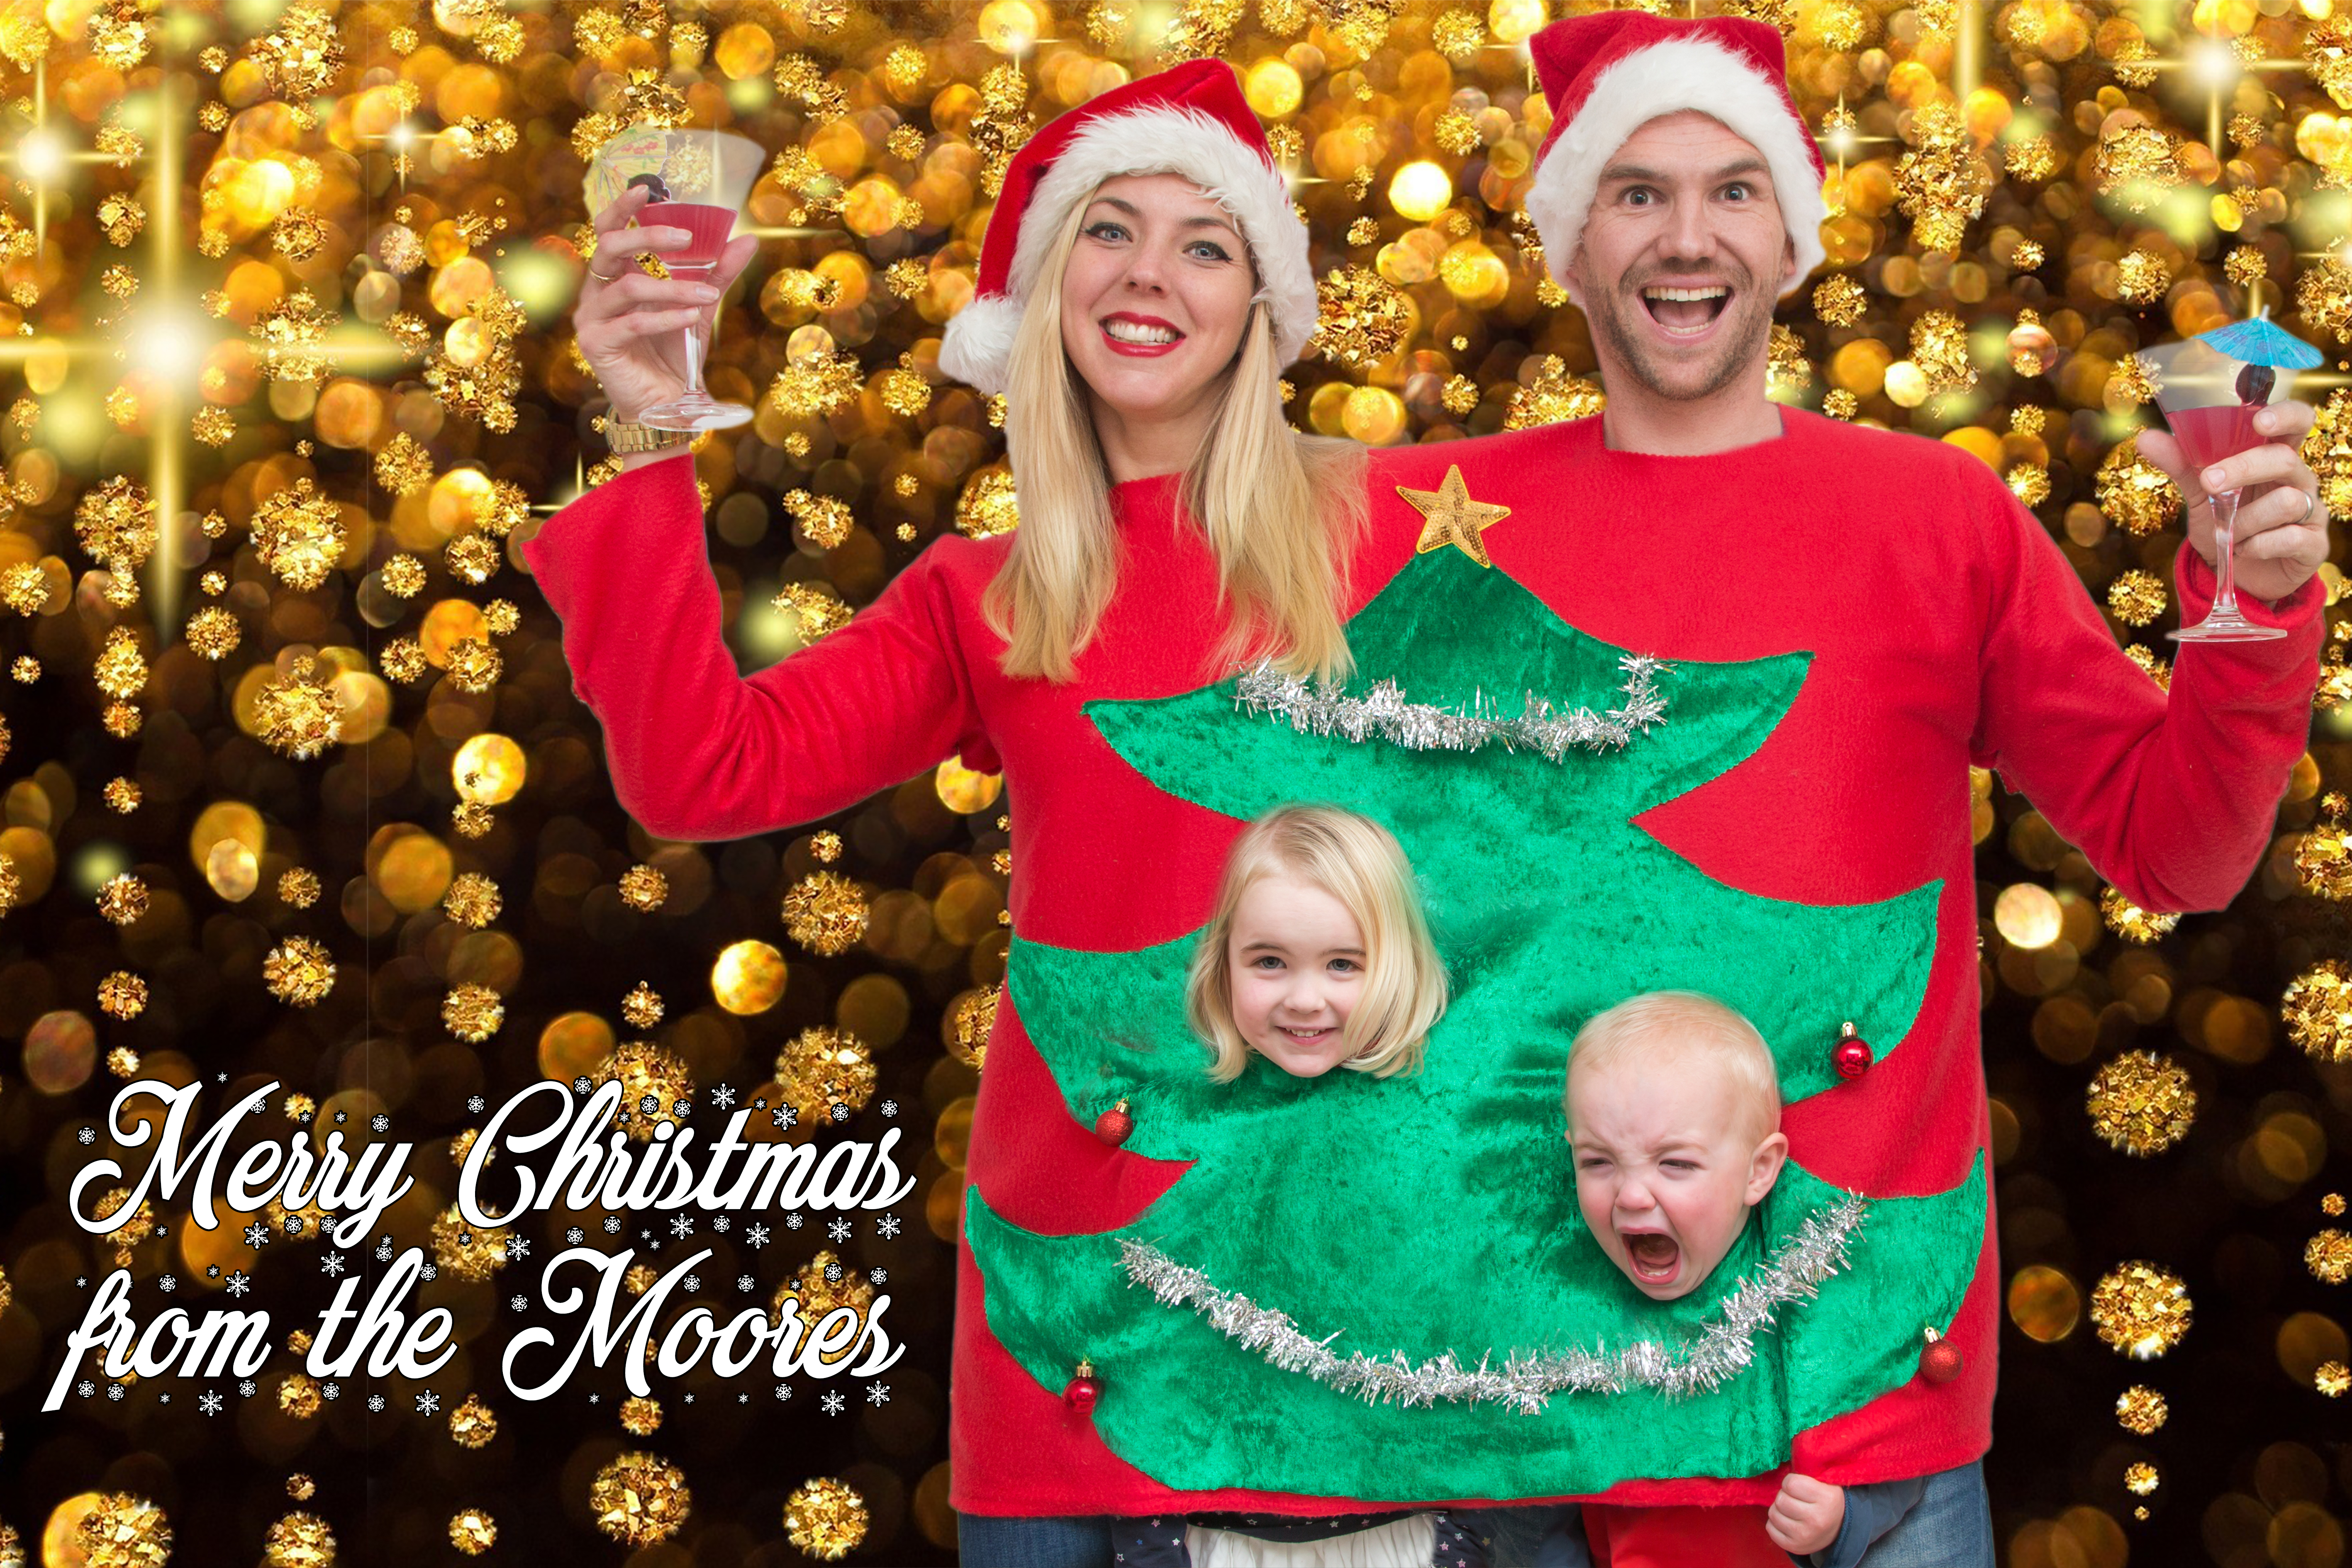 Cheesy Christmas Family Photo 2017